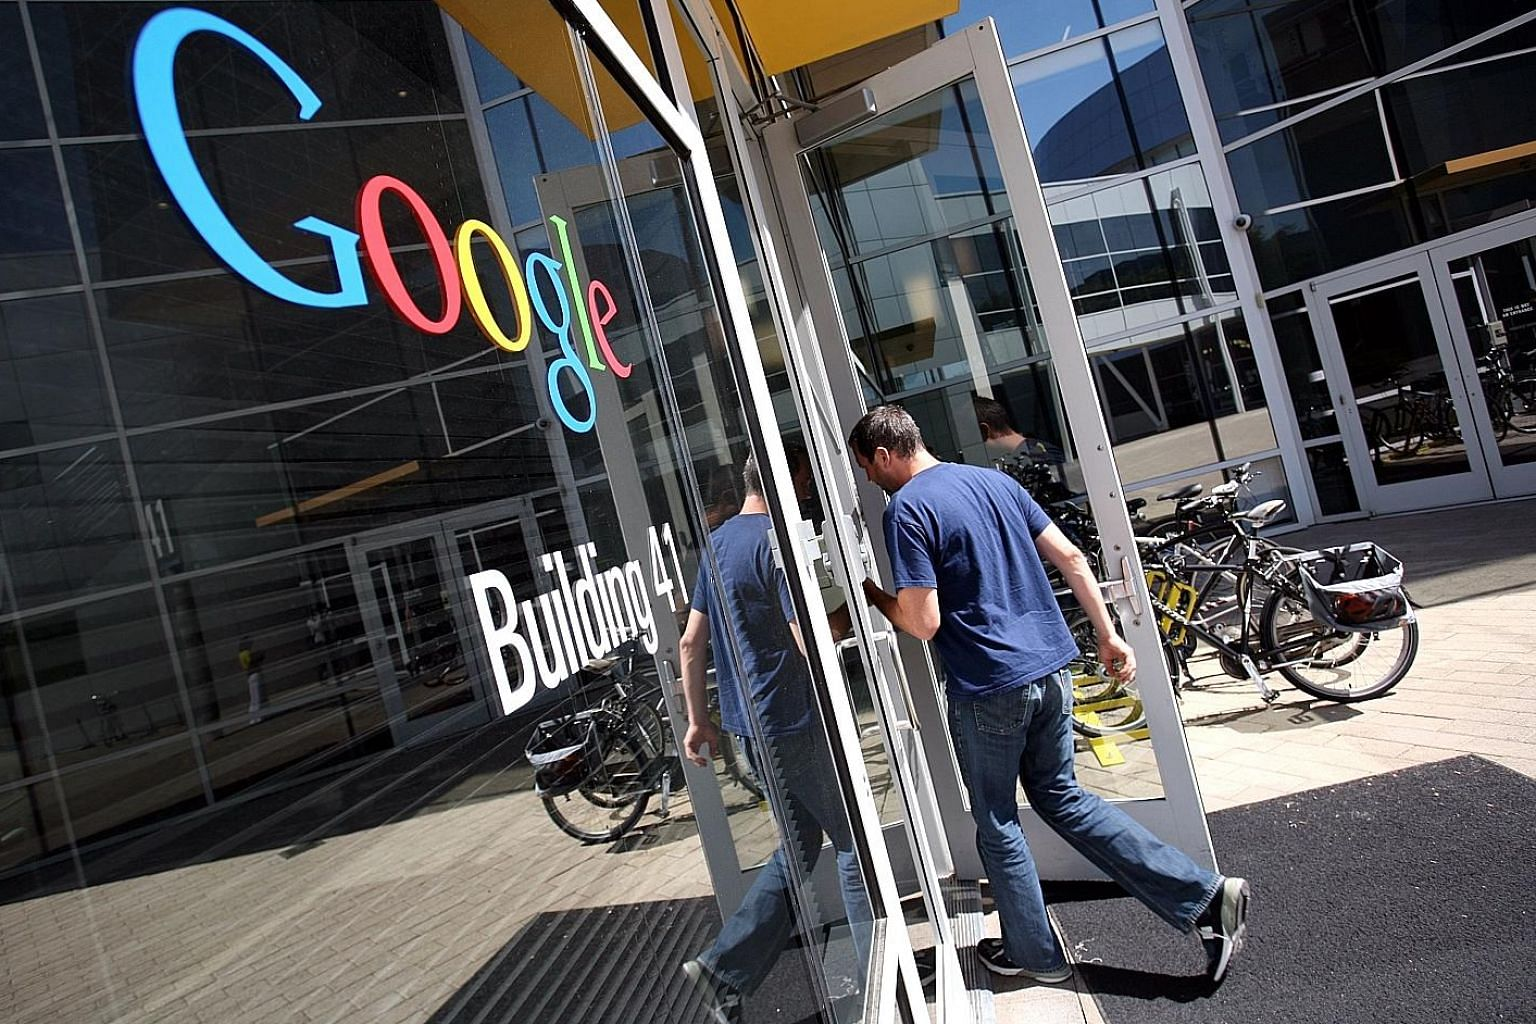 Australia is set to unveil plans to force major Internet firms to share advertising revenue they earn from news featured in their services. Its competition watchdog estimates that Google and Facebook together earn some A$6 billion a year from adverti